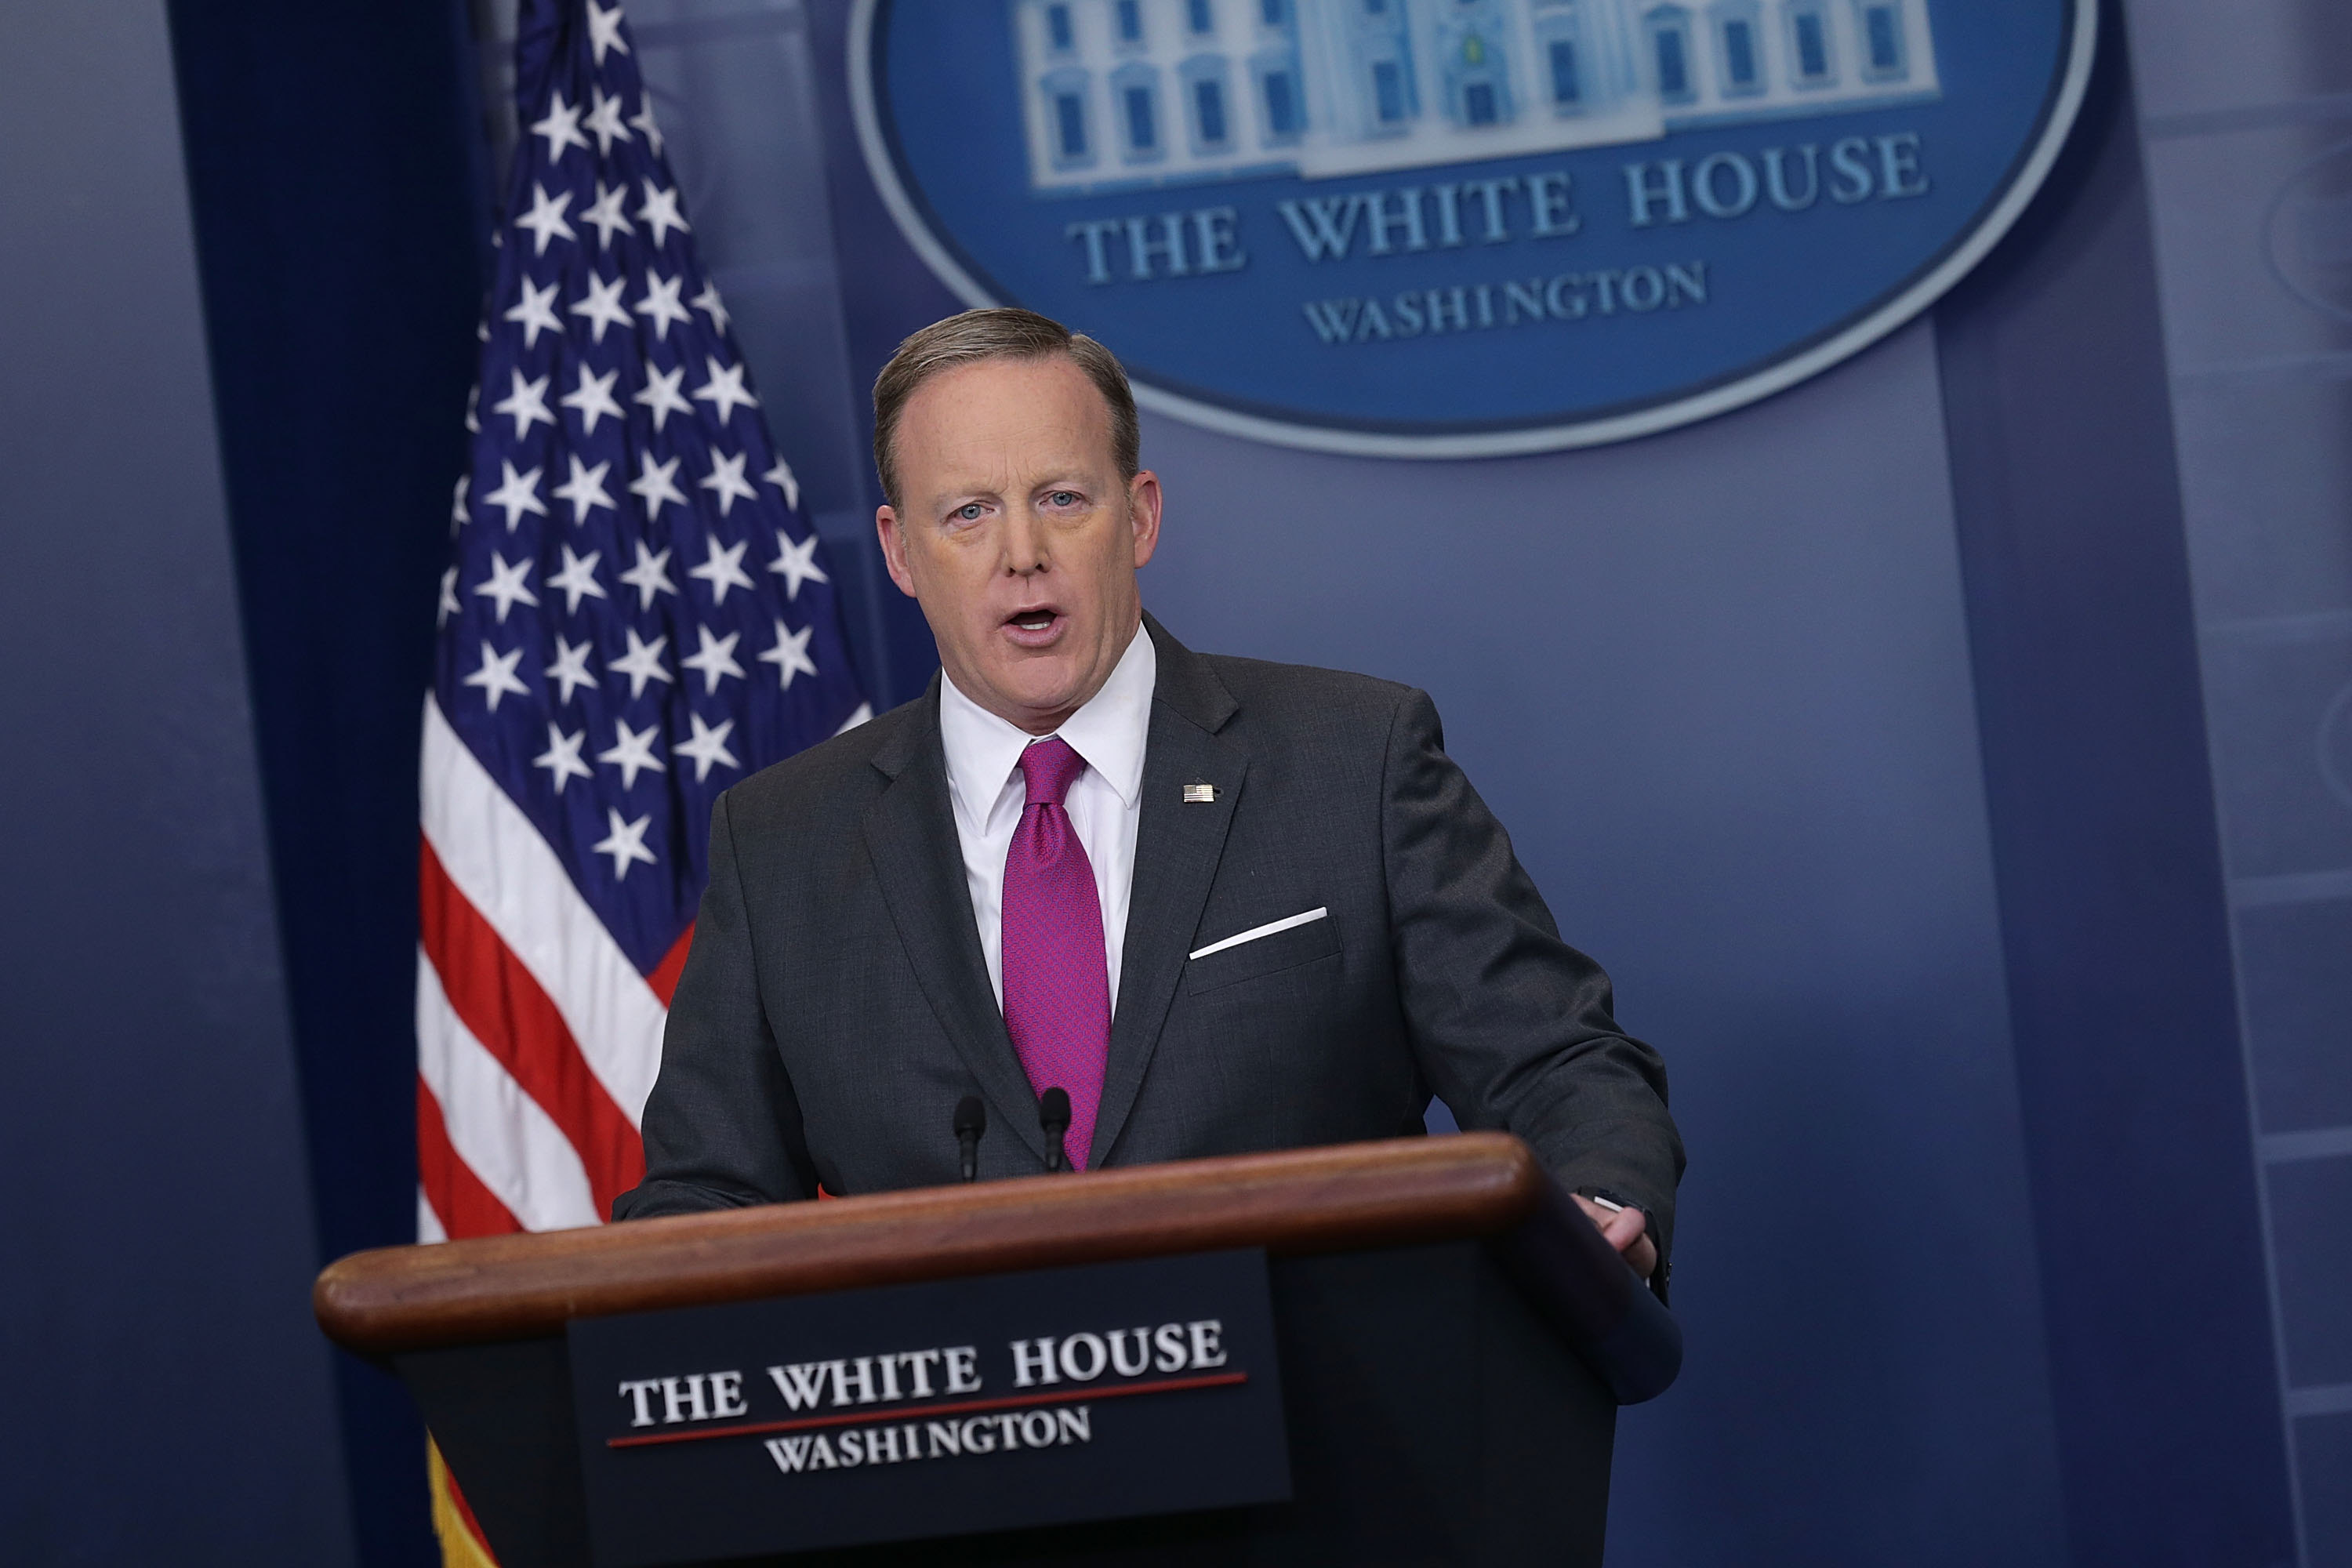 White House Press Secretary Sean Spicer speaks during the daily White House press briefing. (Getty Images)